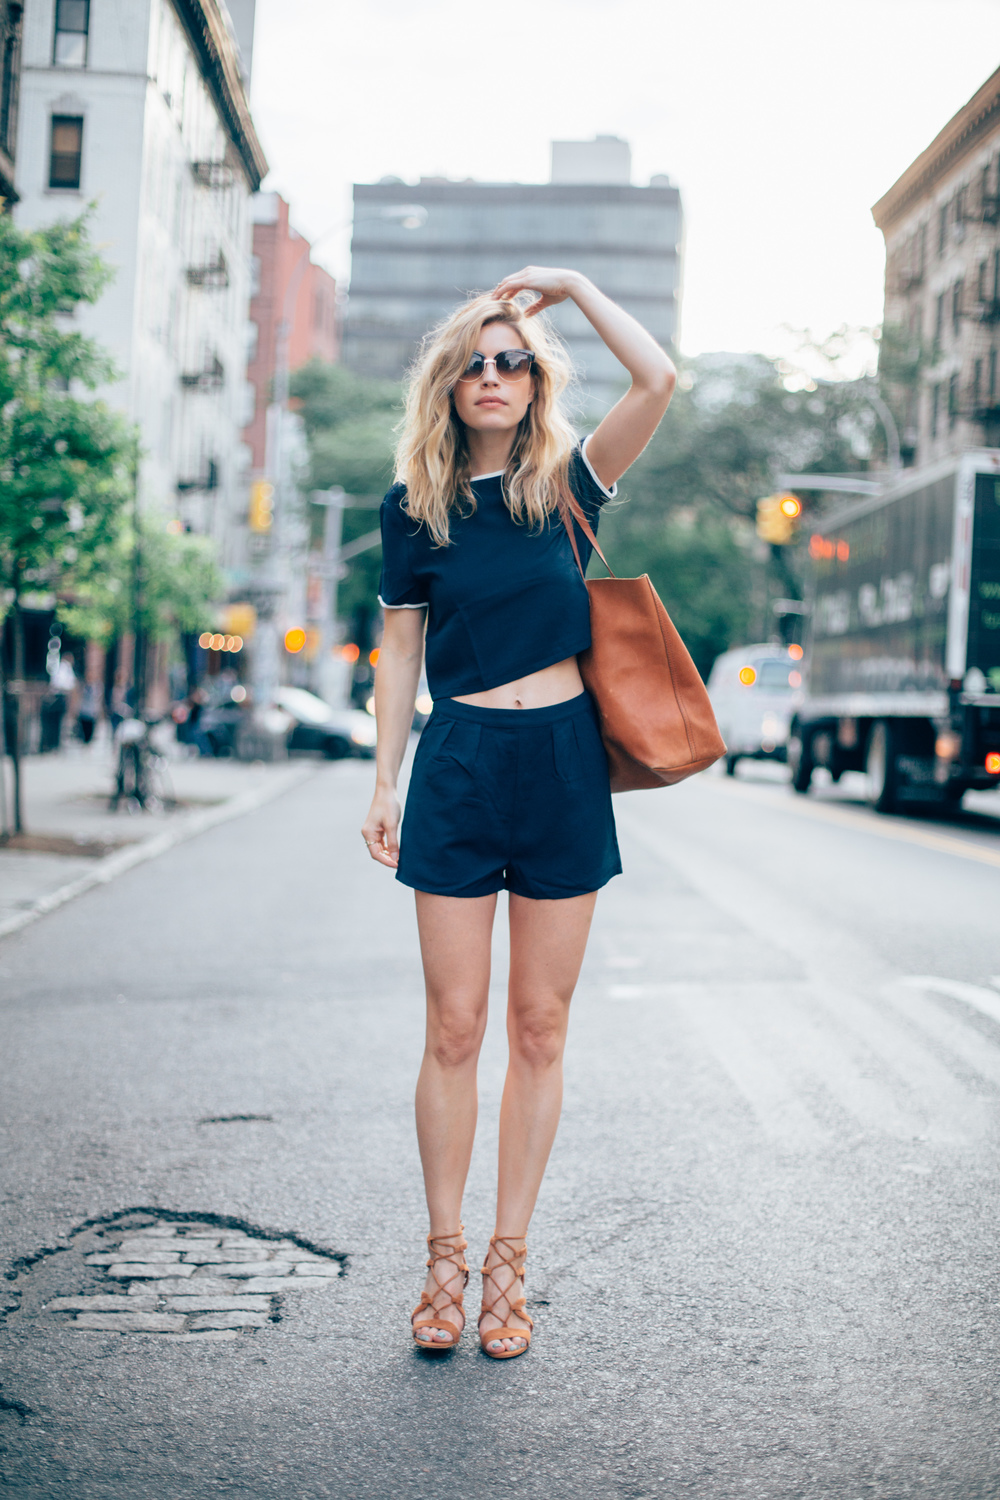 Two piece: Esther Boutique | Sandals: Dune London | Bag: Madewell | Sunnies: Urban Outfitters